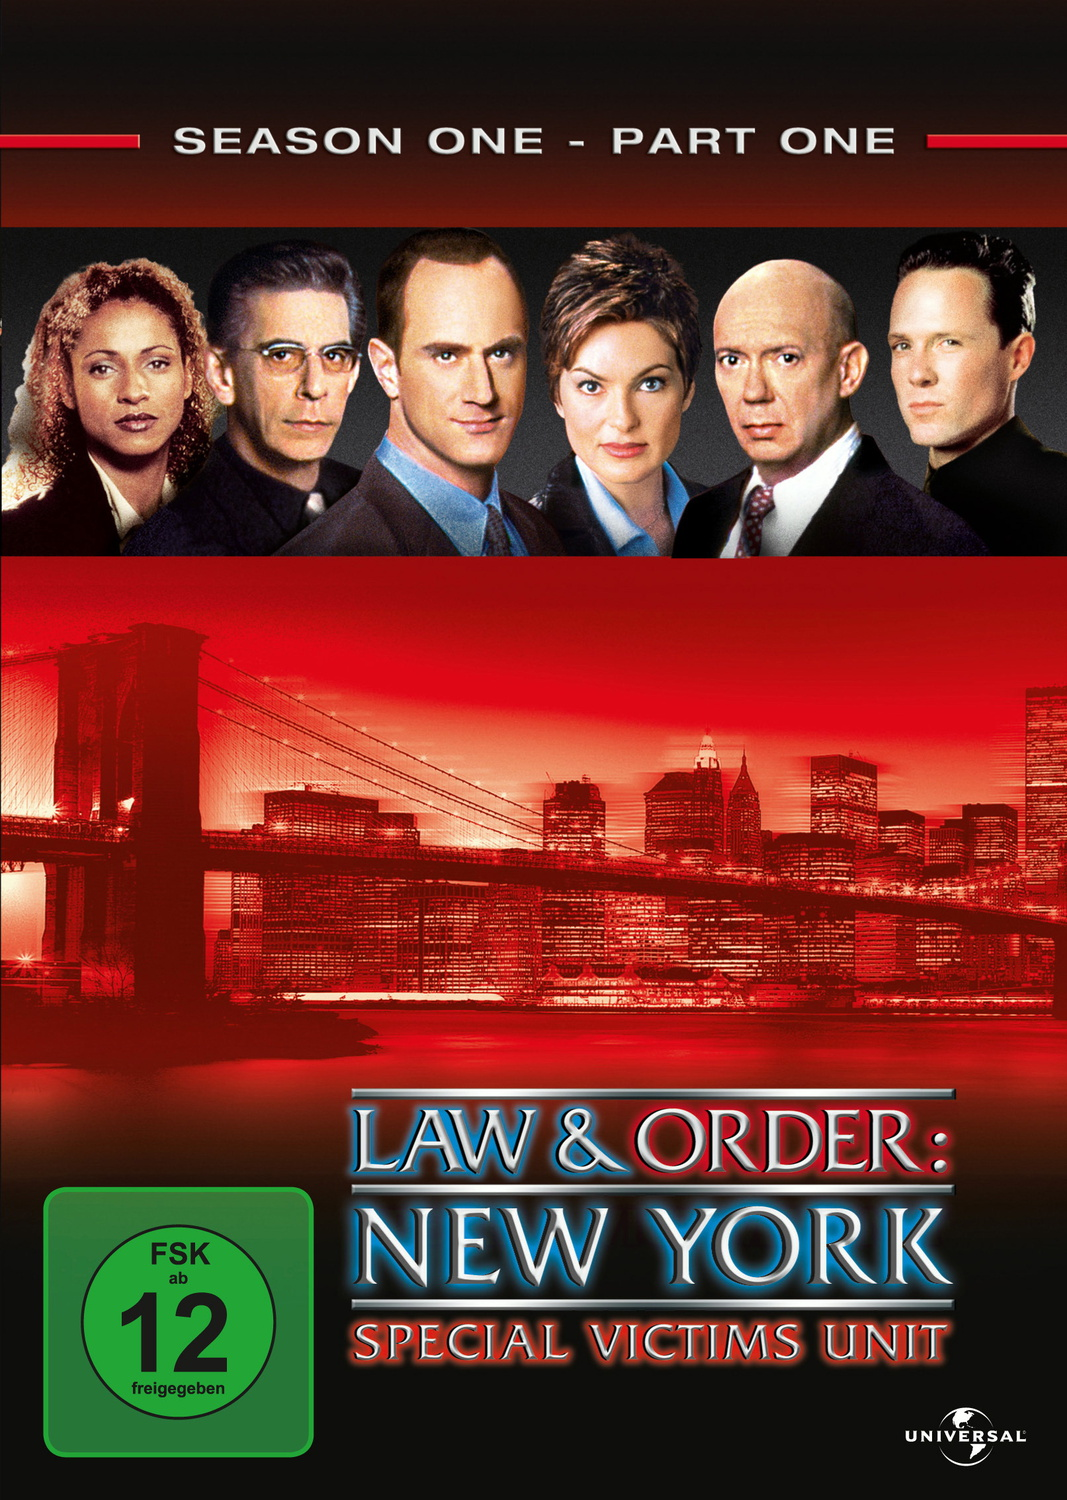 Law & Order: New York - Special Victims Unit 1.1